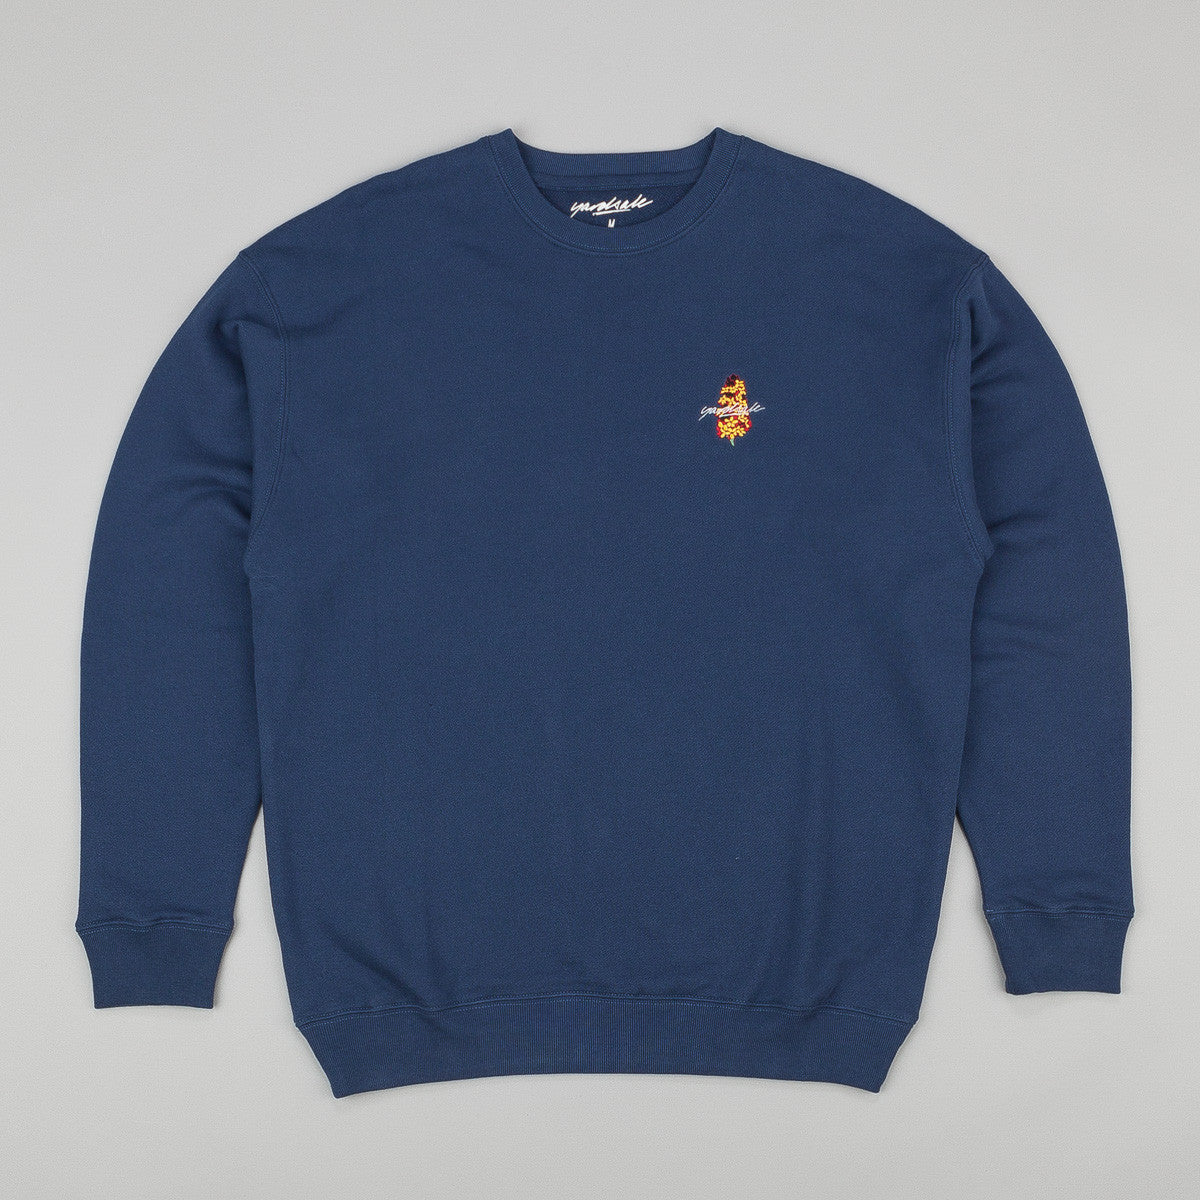 Yardsale Crew Neck Sweatshirt